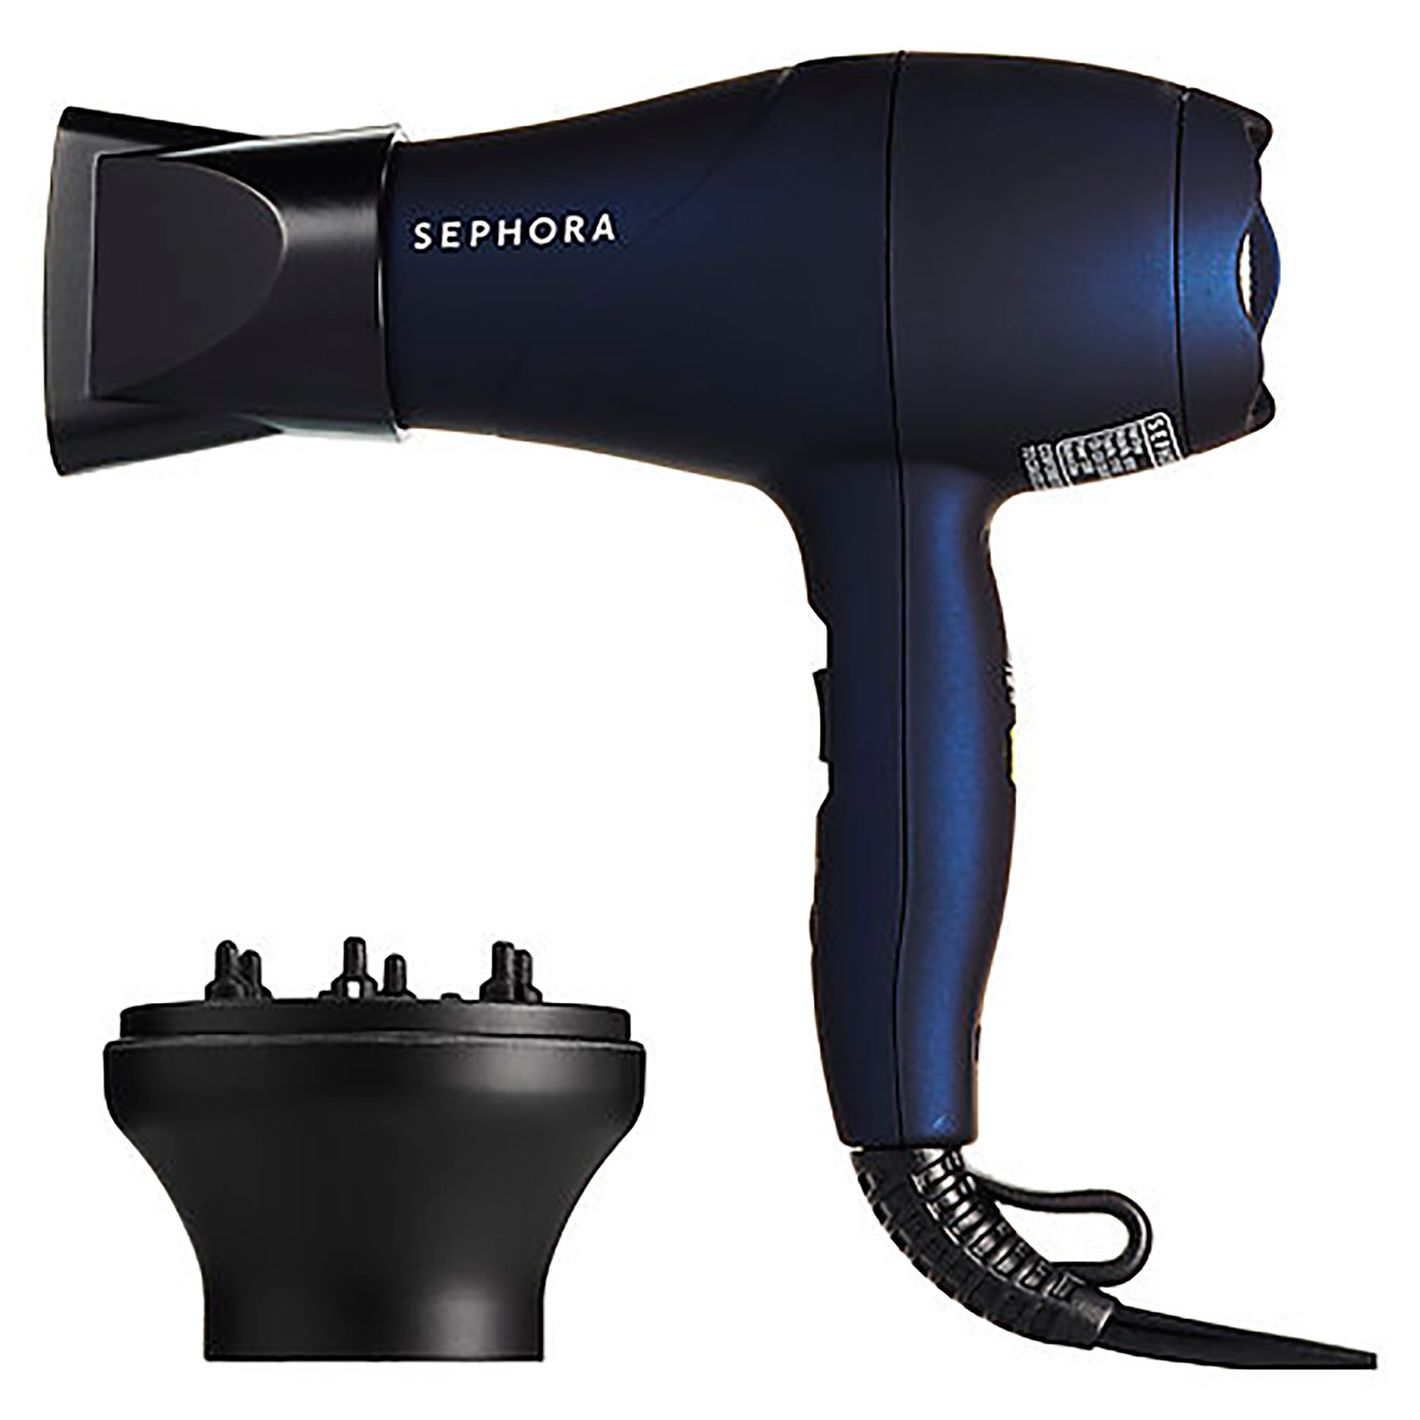 Sephora Collection Mini Blast Travel Ionic Blow-Dryer